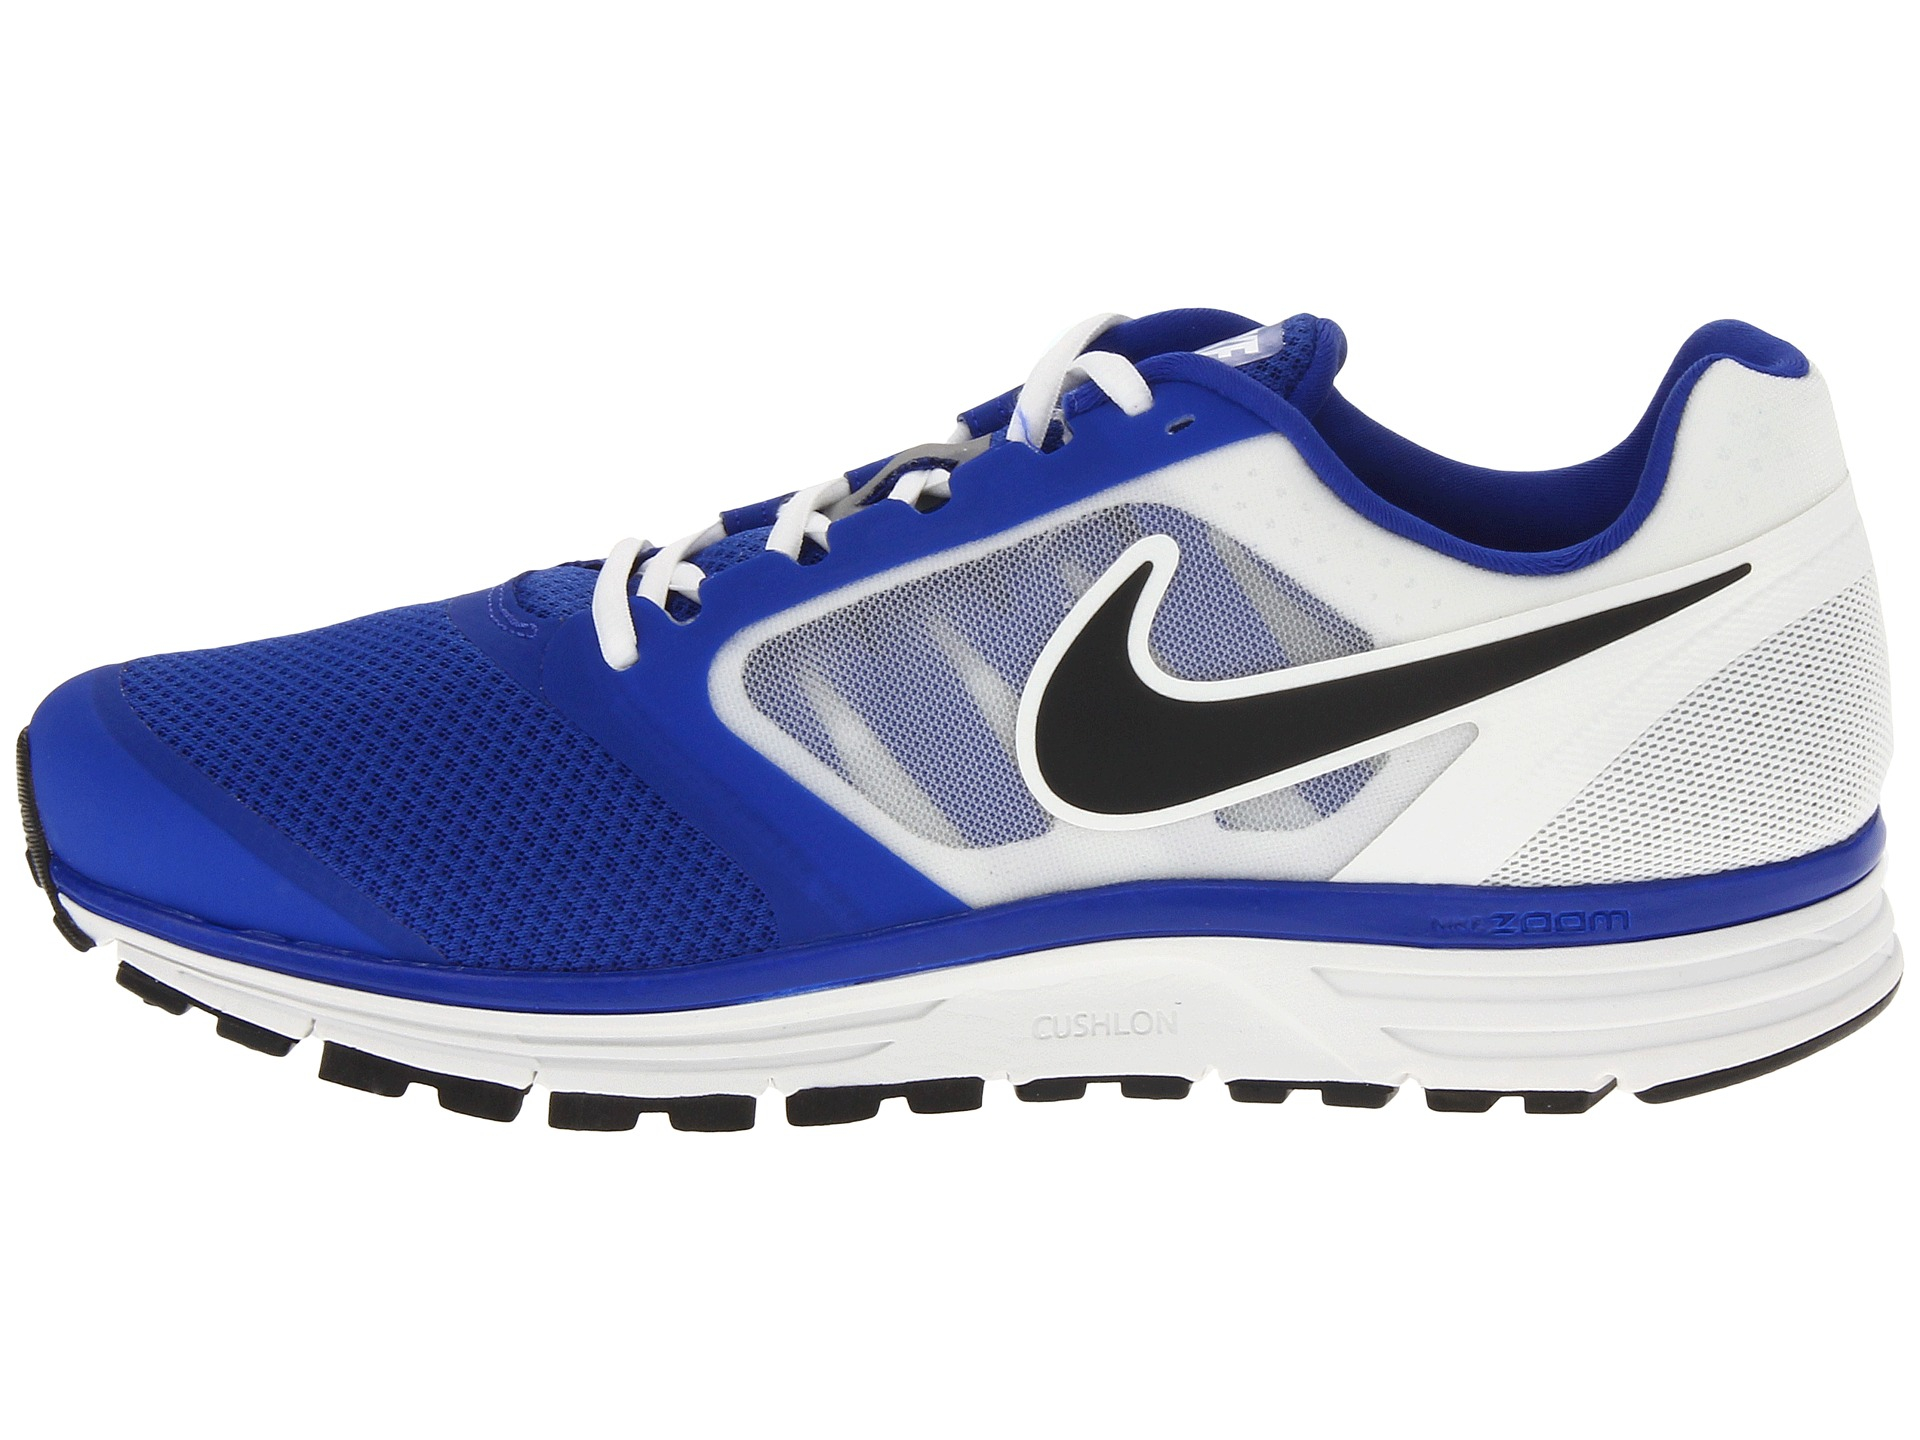 a7f5320508951 ... new arrivals lyst nike zoom vomero 8 in blue for men 2d7ef 6e079